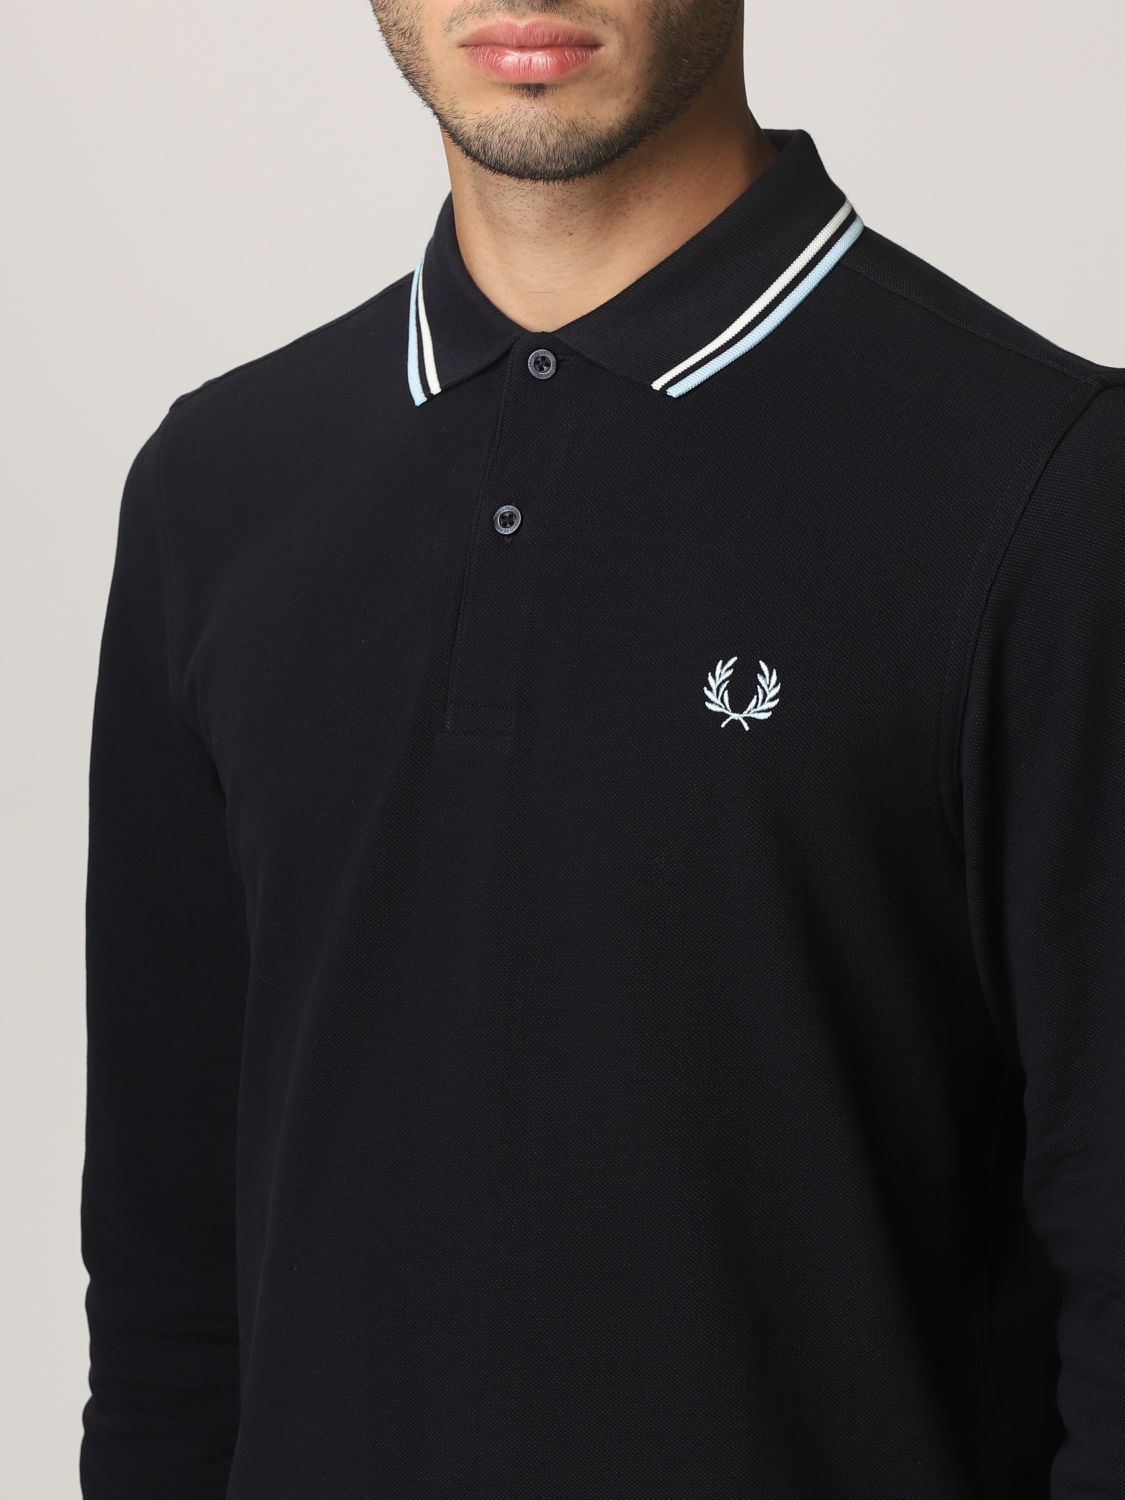 Polo shirt Fred Perry: Polo shirt men Fred Perry navy 3